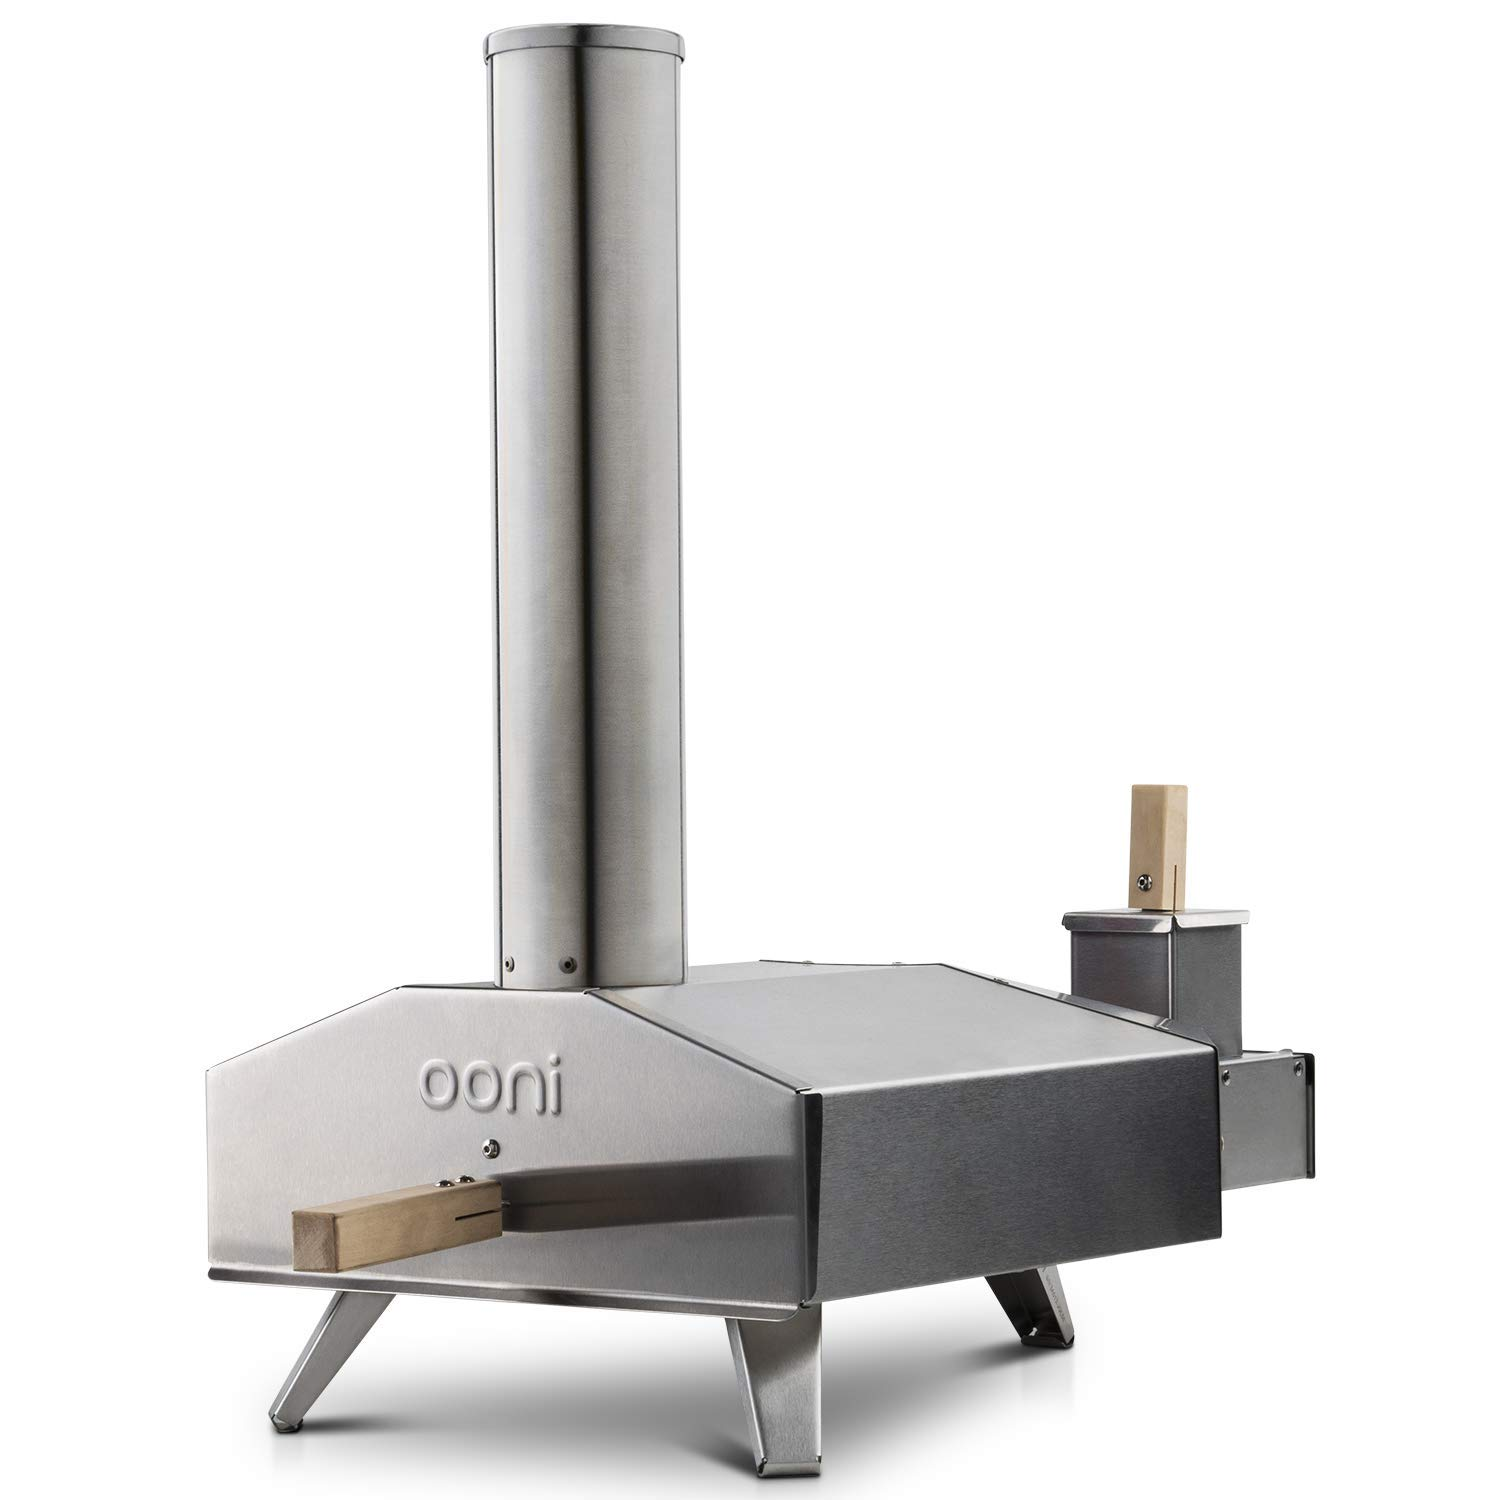 Ooni 3 Outdoor Pizza Oven, Pizza Maker, Portable Oven, Outdoor Cooking, Award Winning Pizza Oven by Ooni